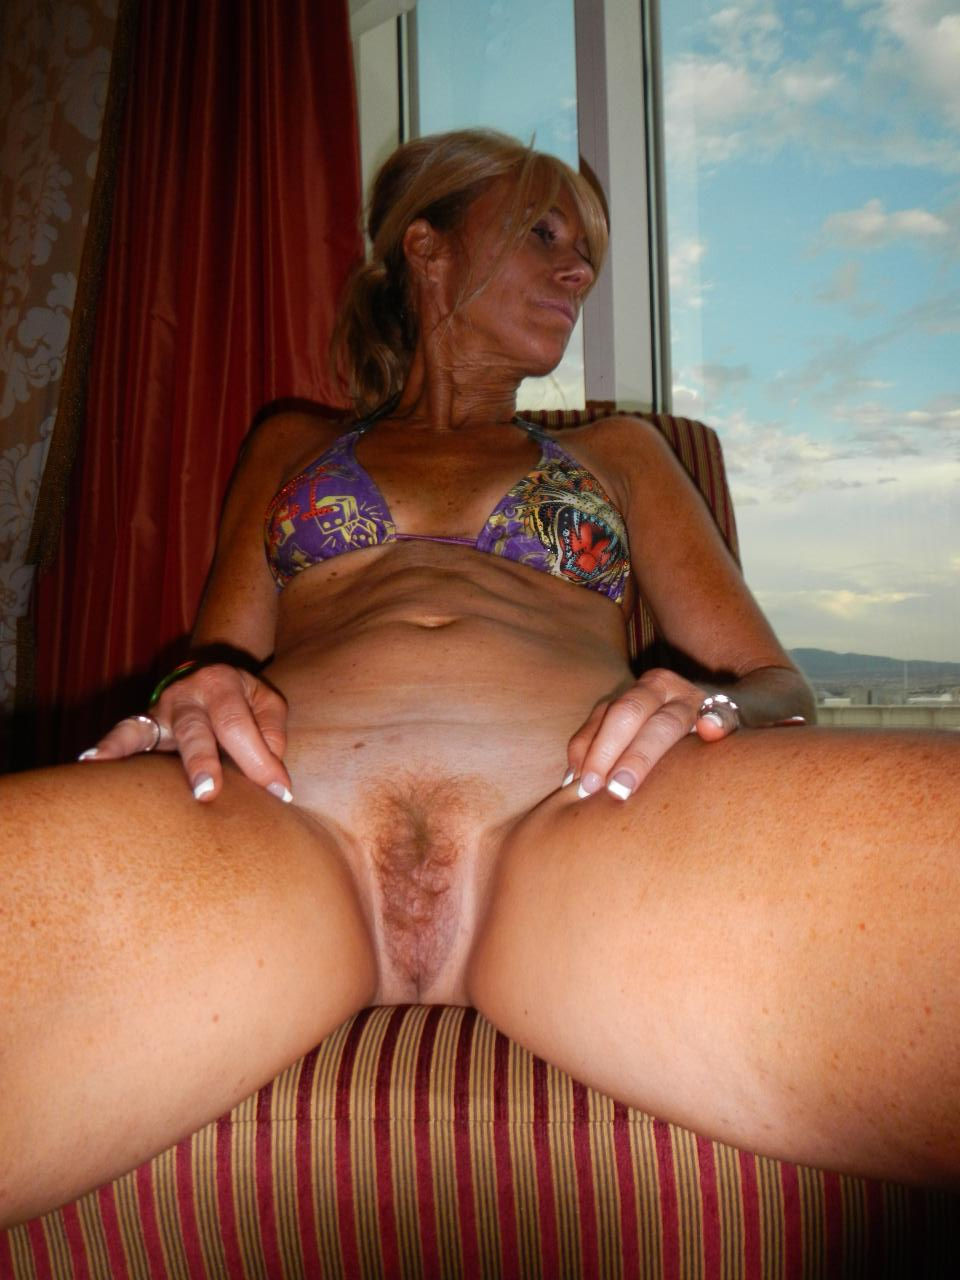 Amateur milf meet for sex video